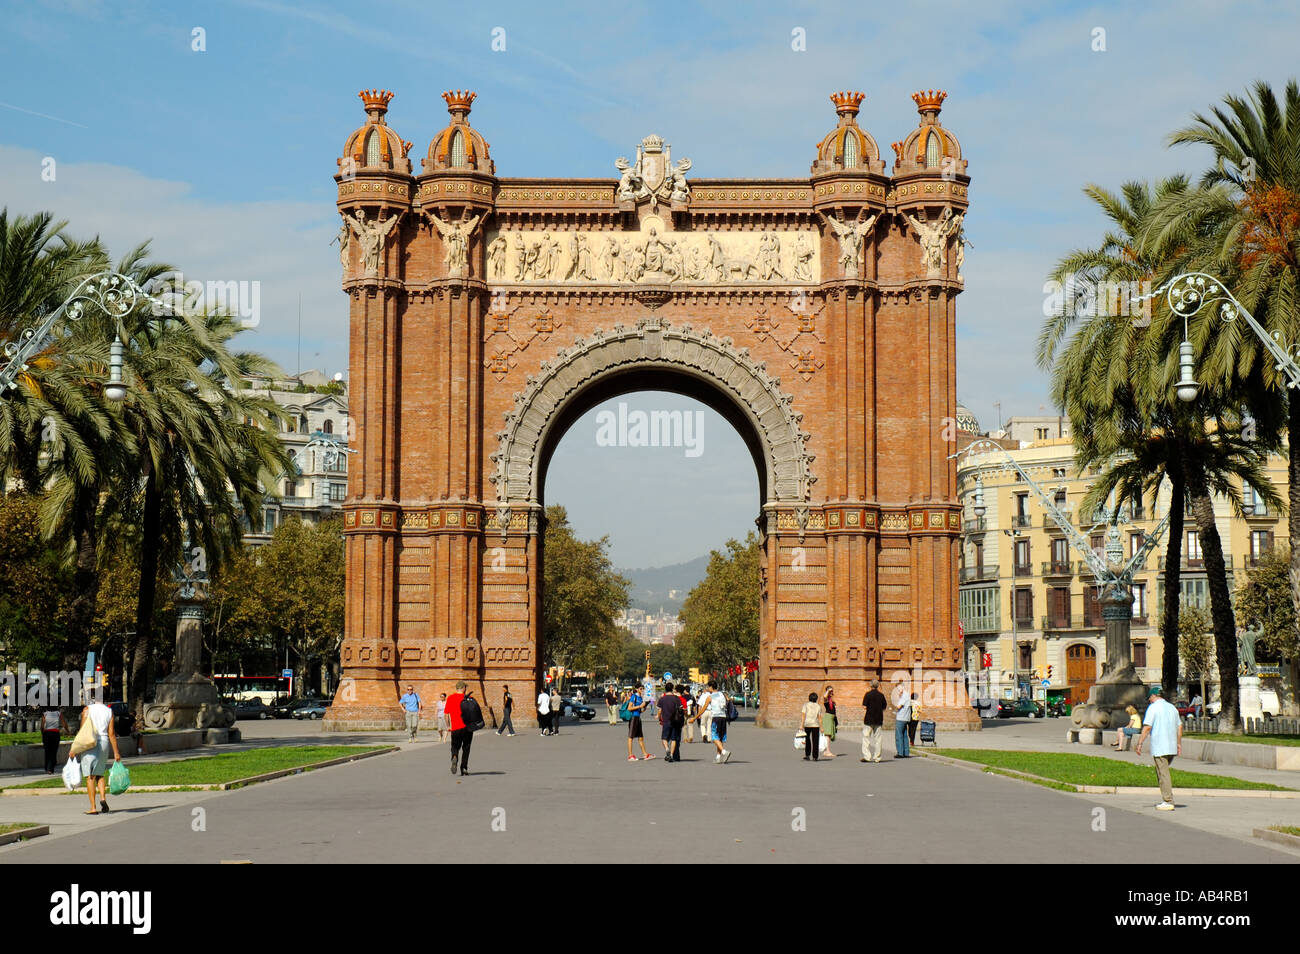 Arc de Triomf, Barcelona, Spain. Built for the 1888 Universal Exhibition. Stock Photo